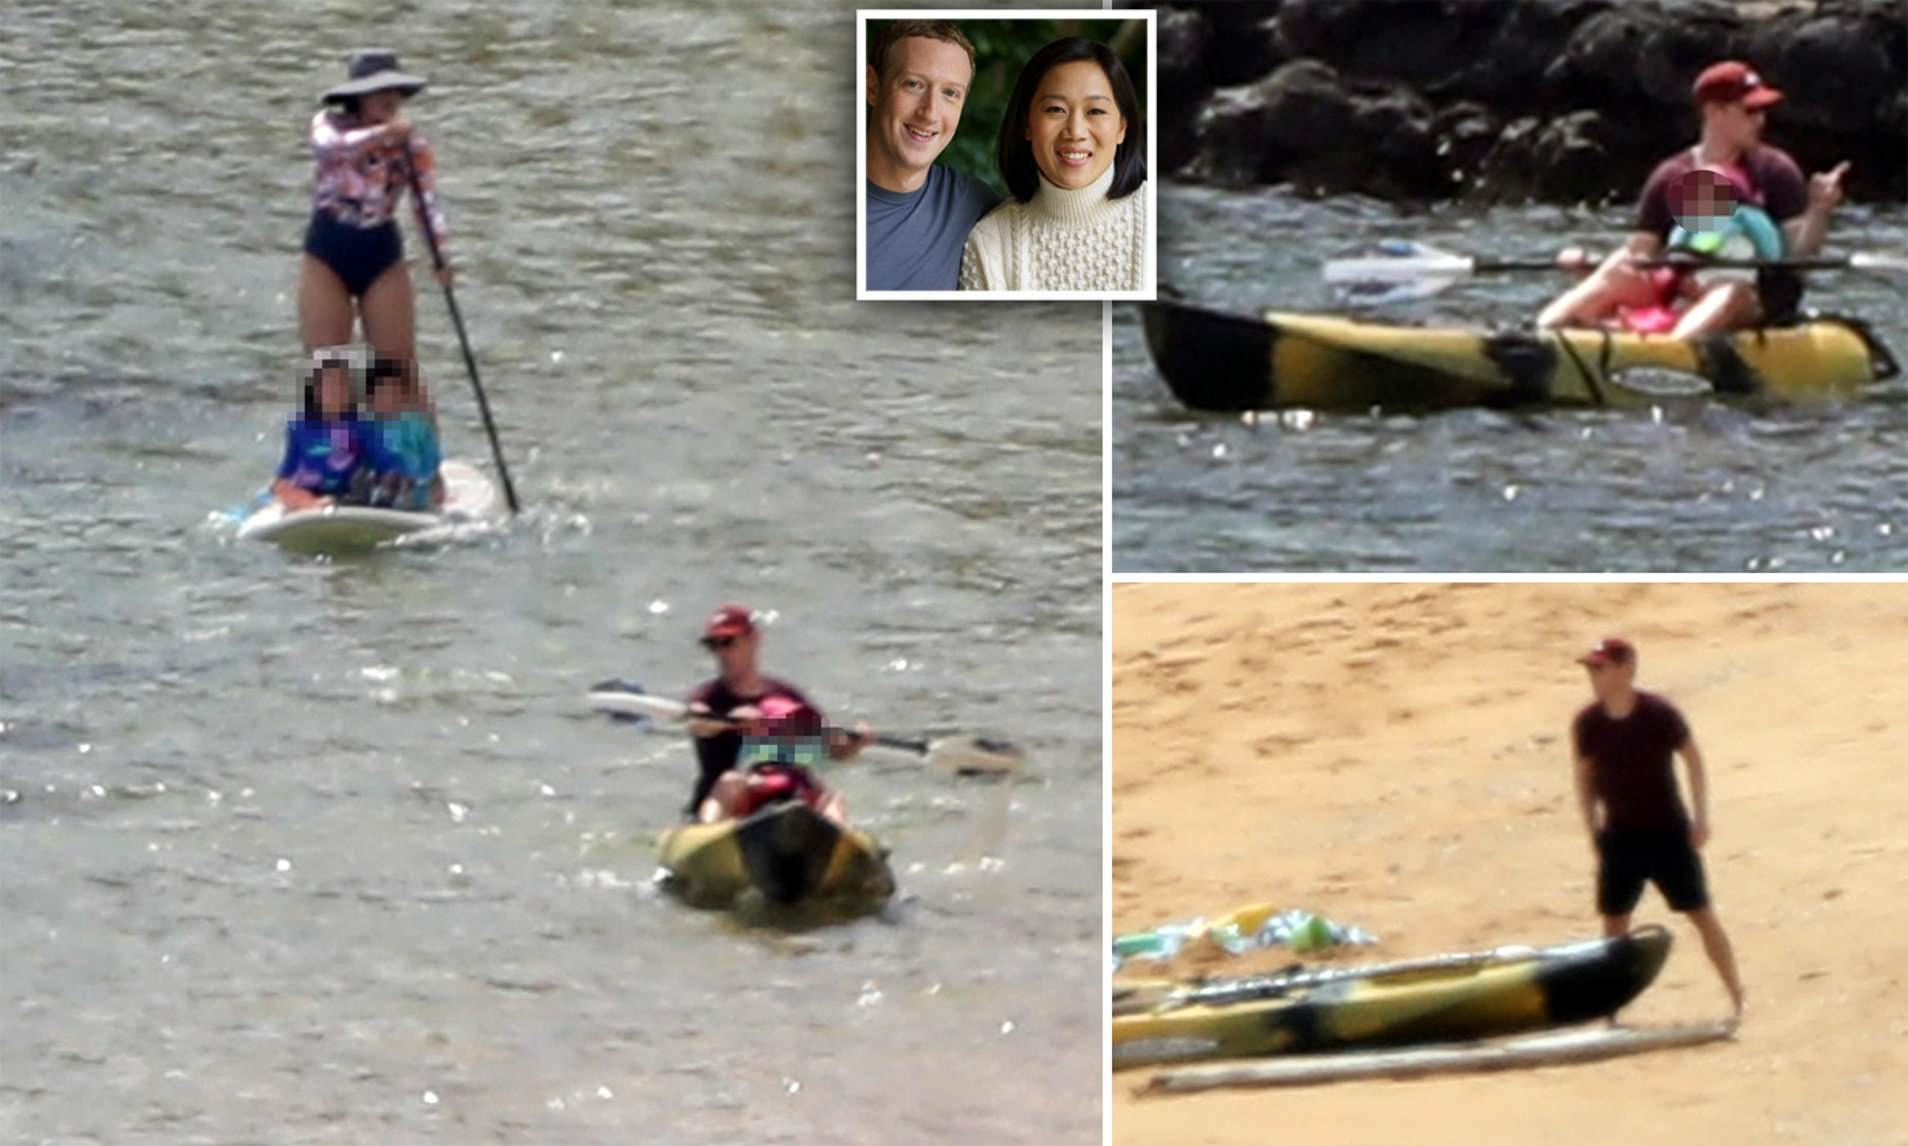 Mark Zuckerberg Visits Hawaii Amid Facebook Advertising Woes Daily Mail Online